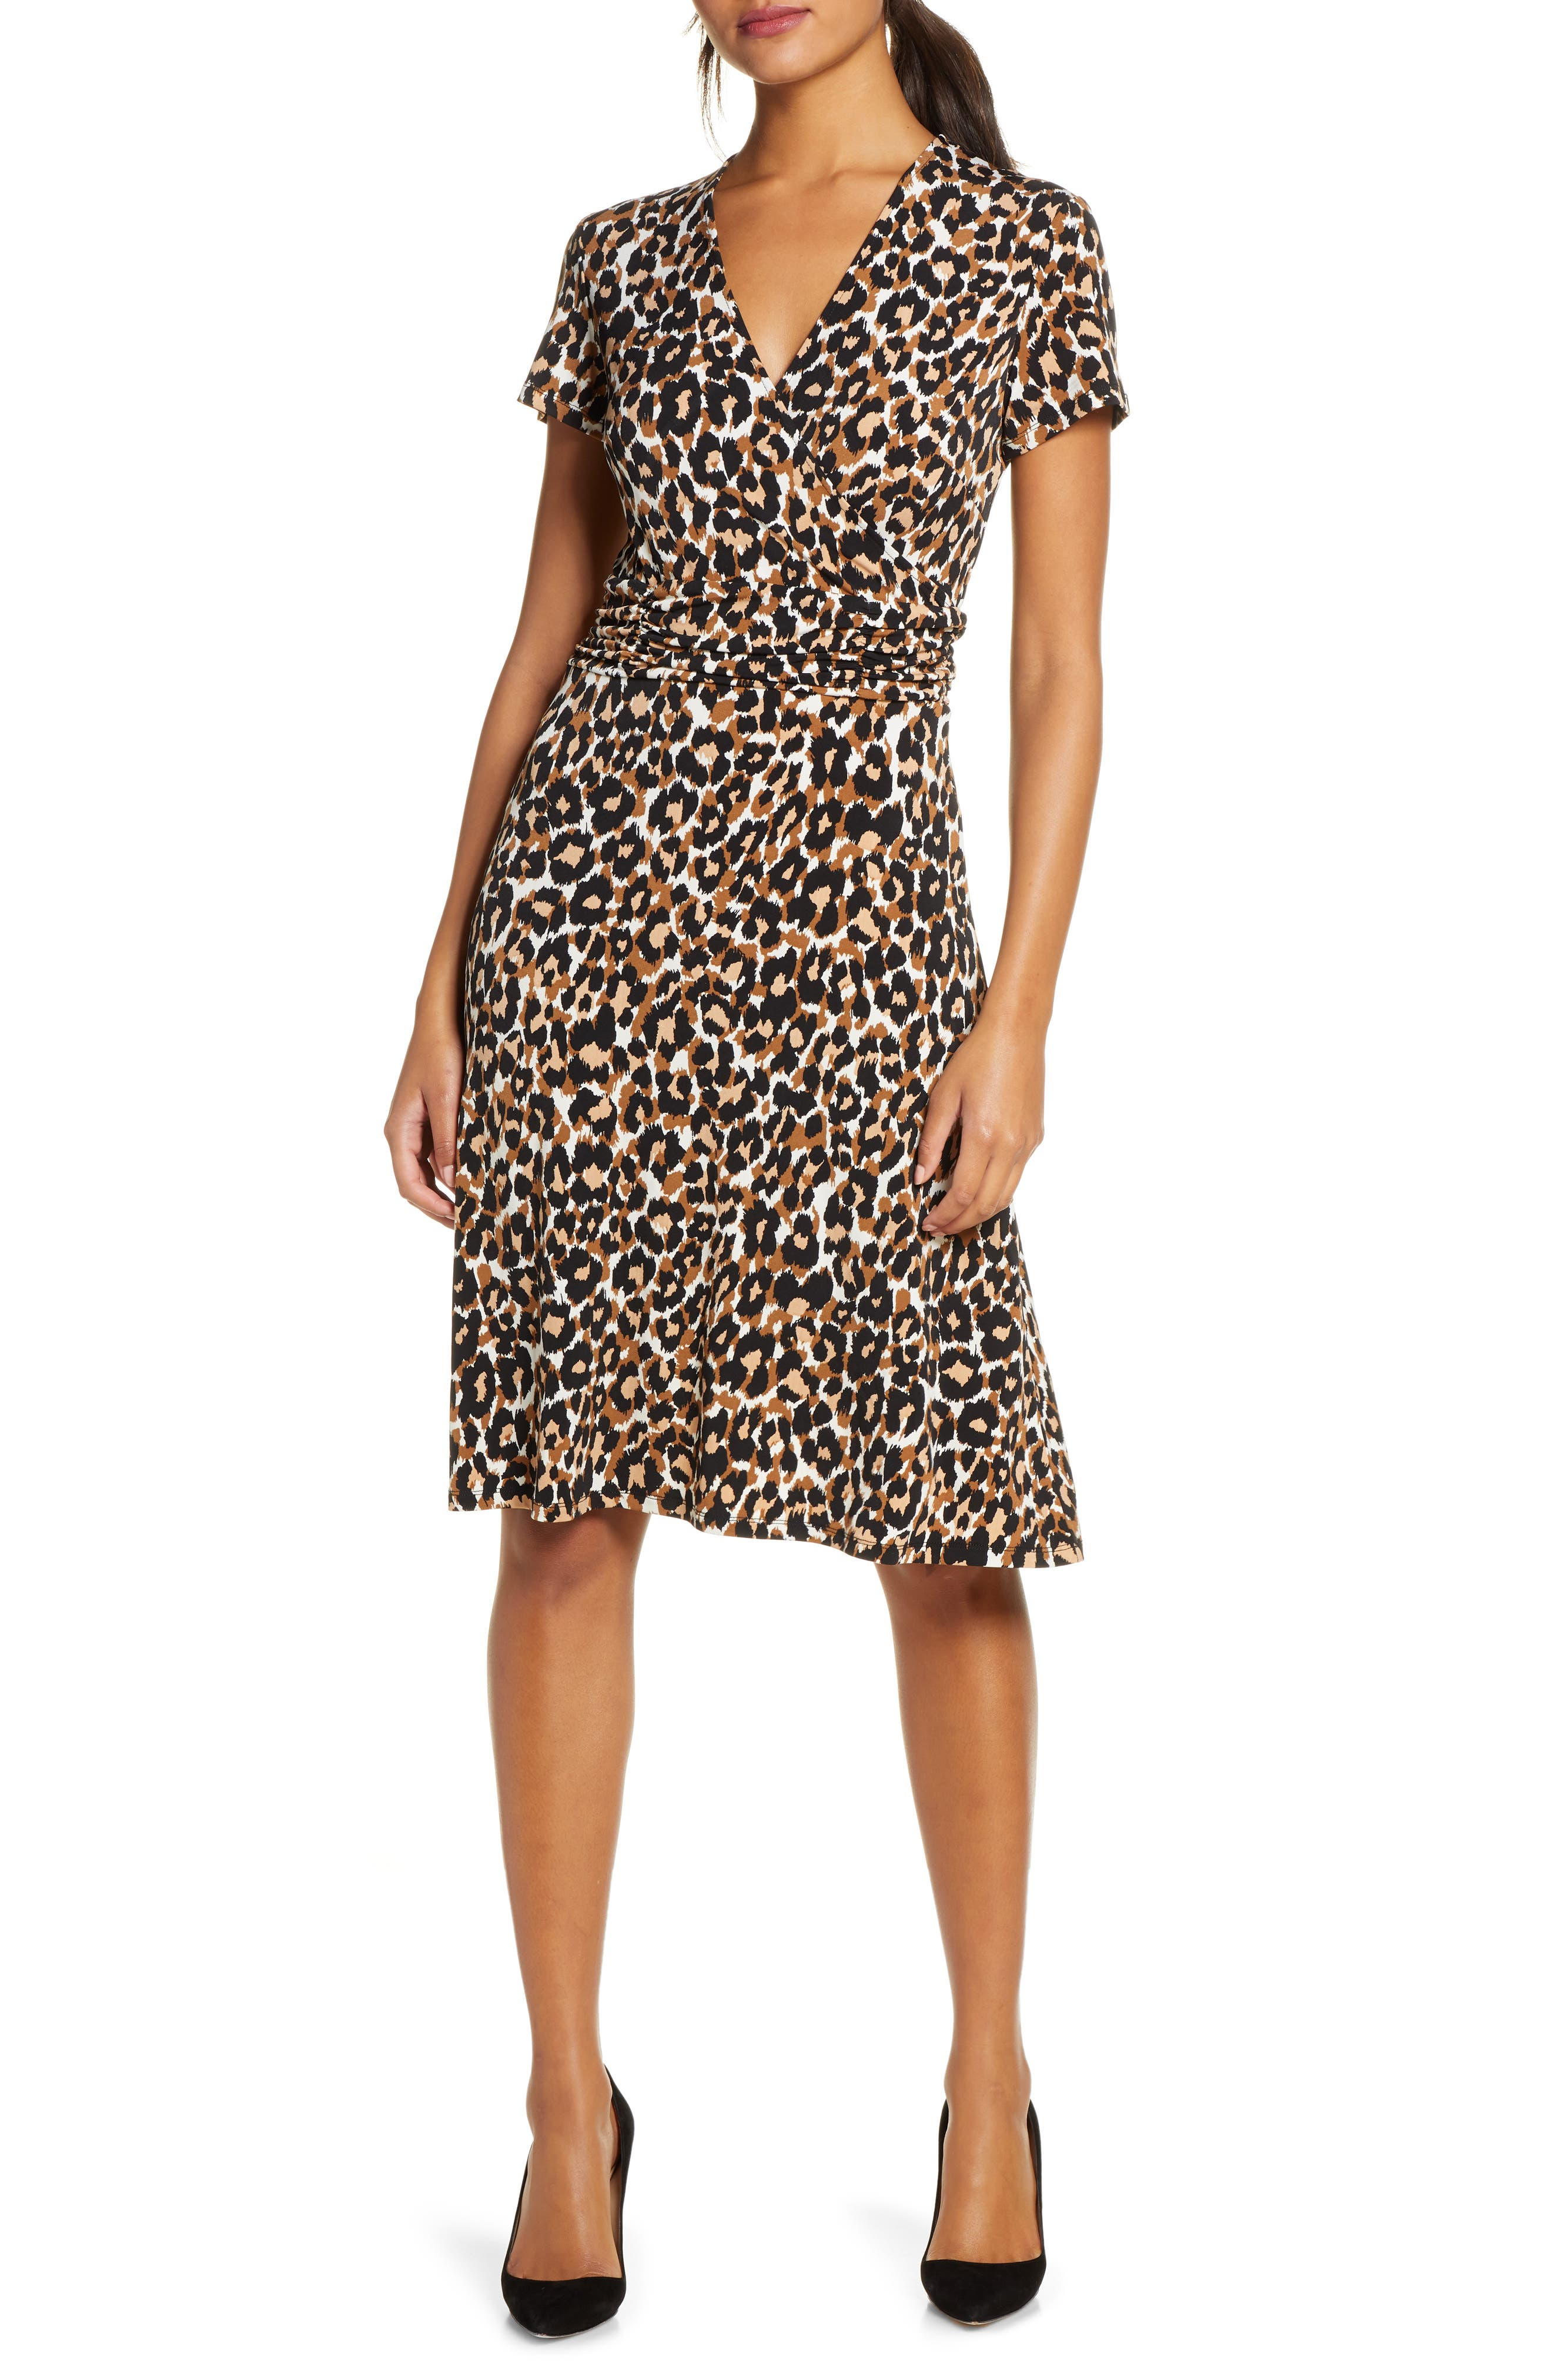 Women's Leota New Arrivals: Clothing, Shoes & Beauty | Nordstrom